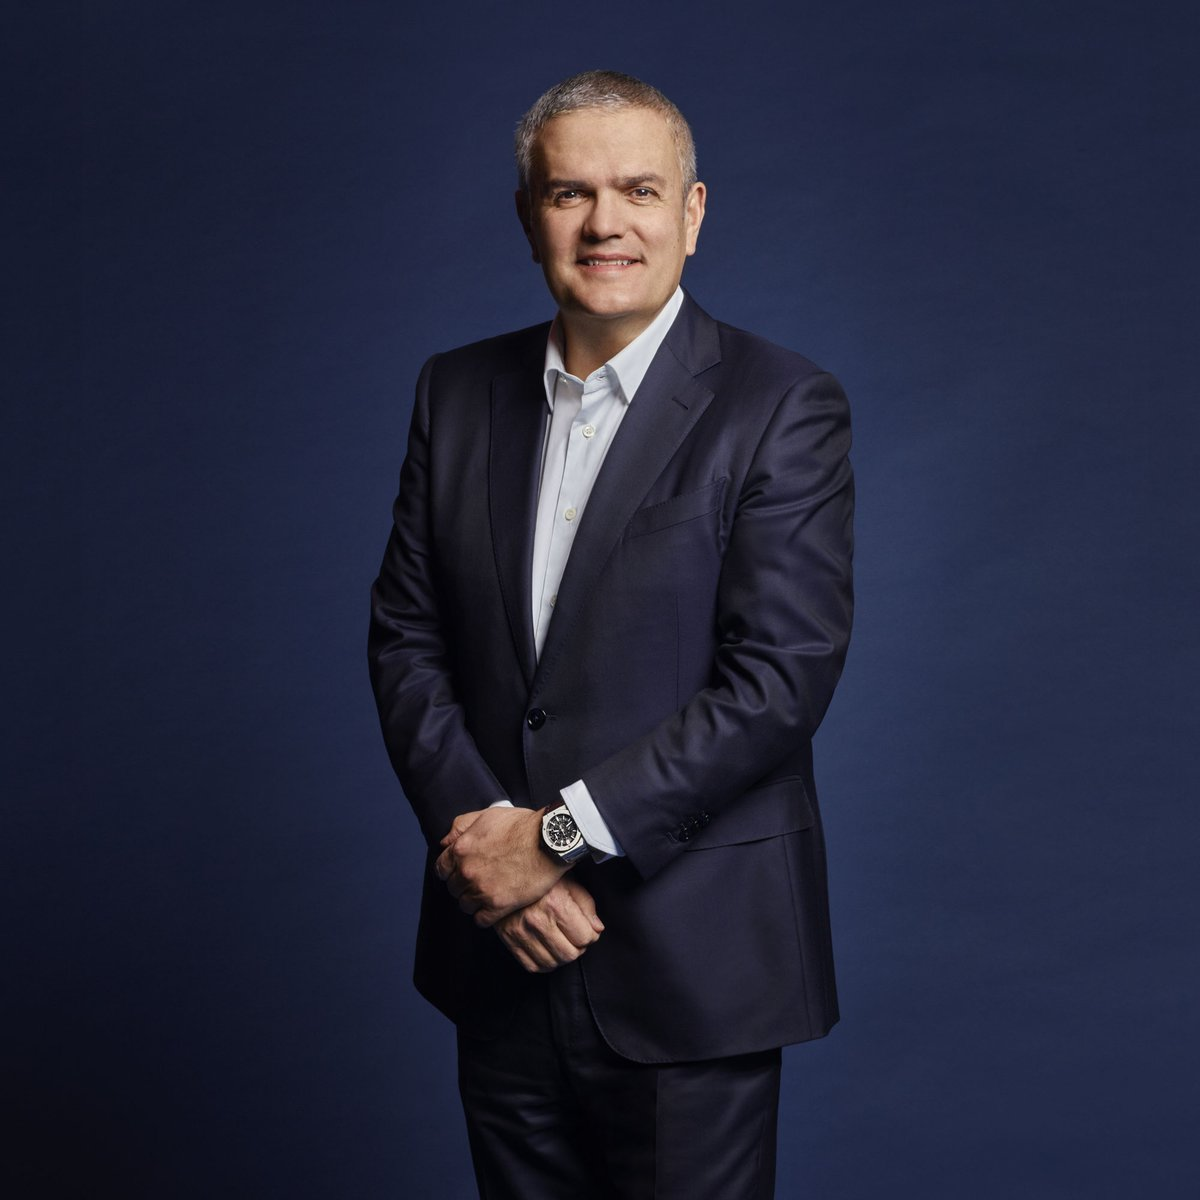 Happy Birthday to #Hublot CEO #RicardoGuadalupe!